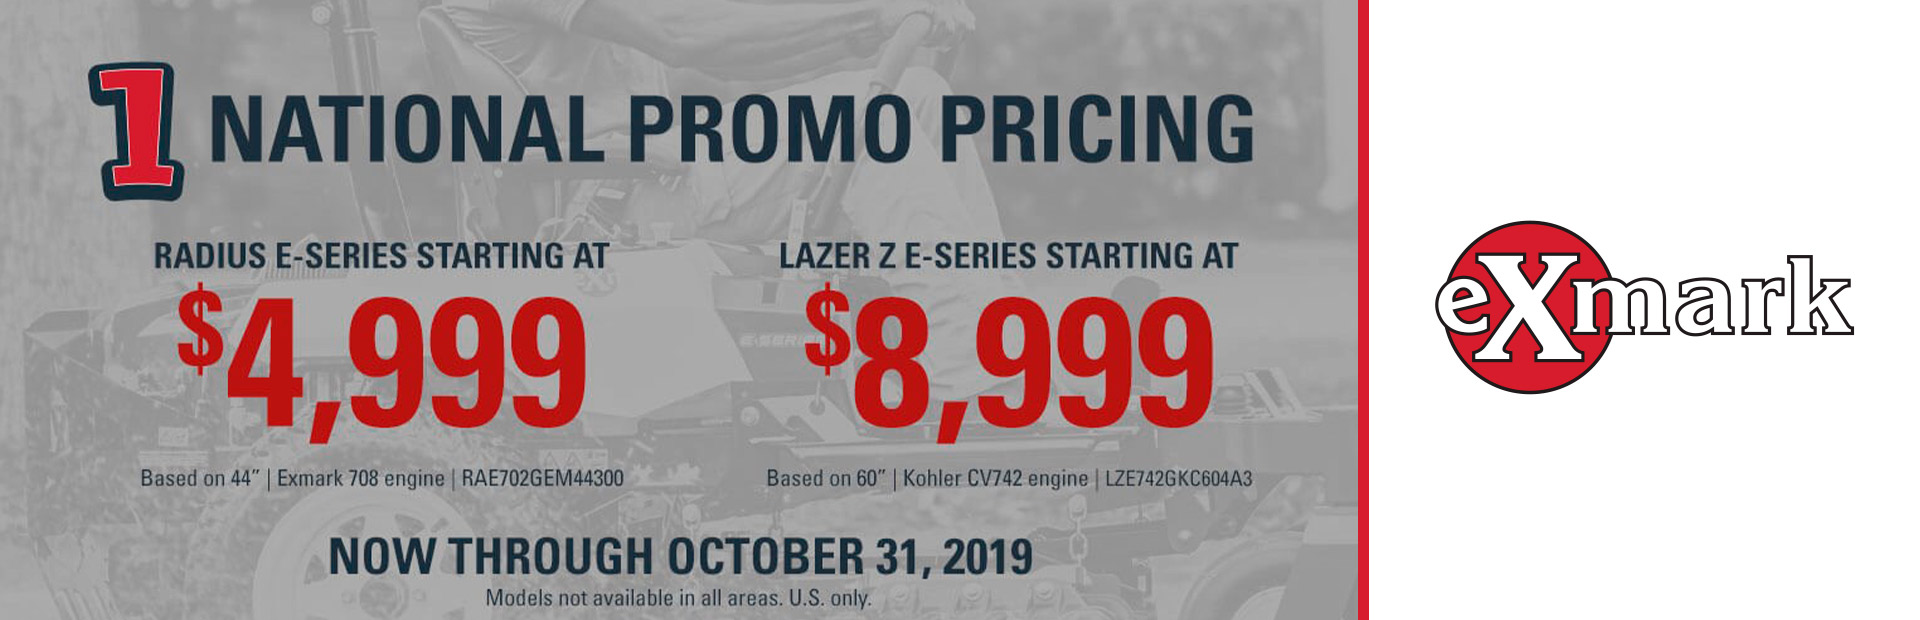 Exmark: National Promo Pricing